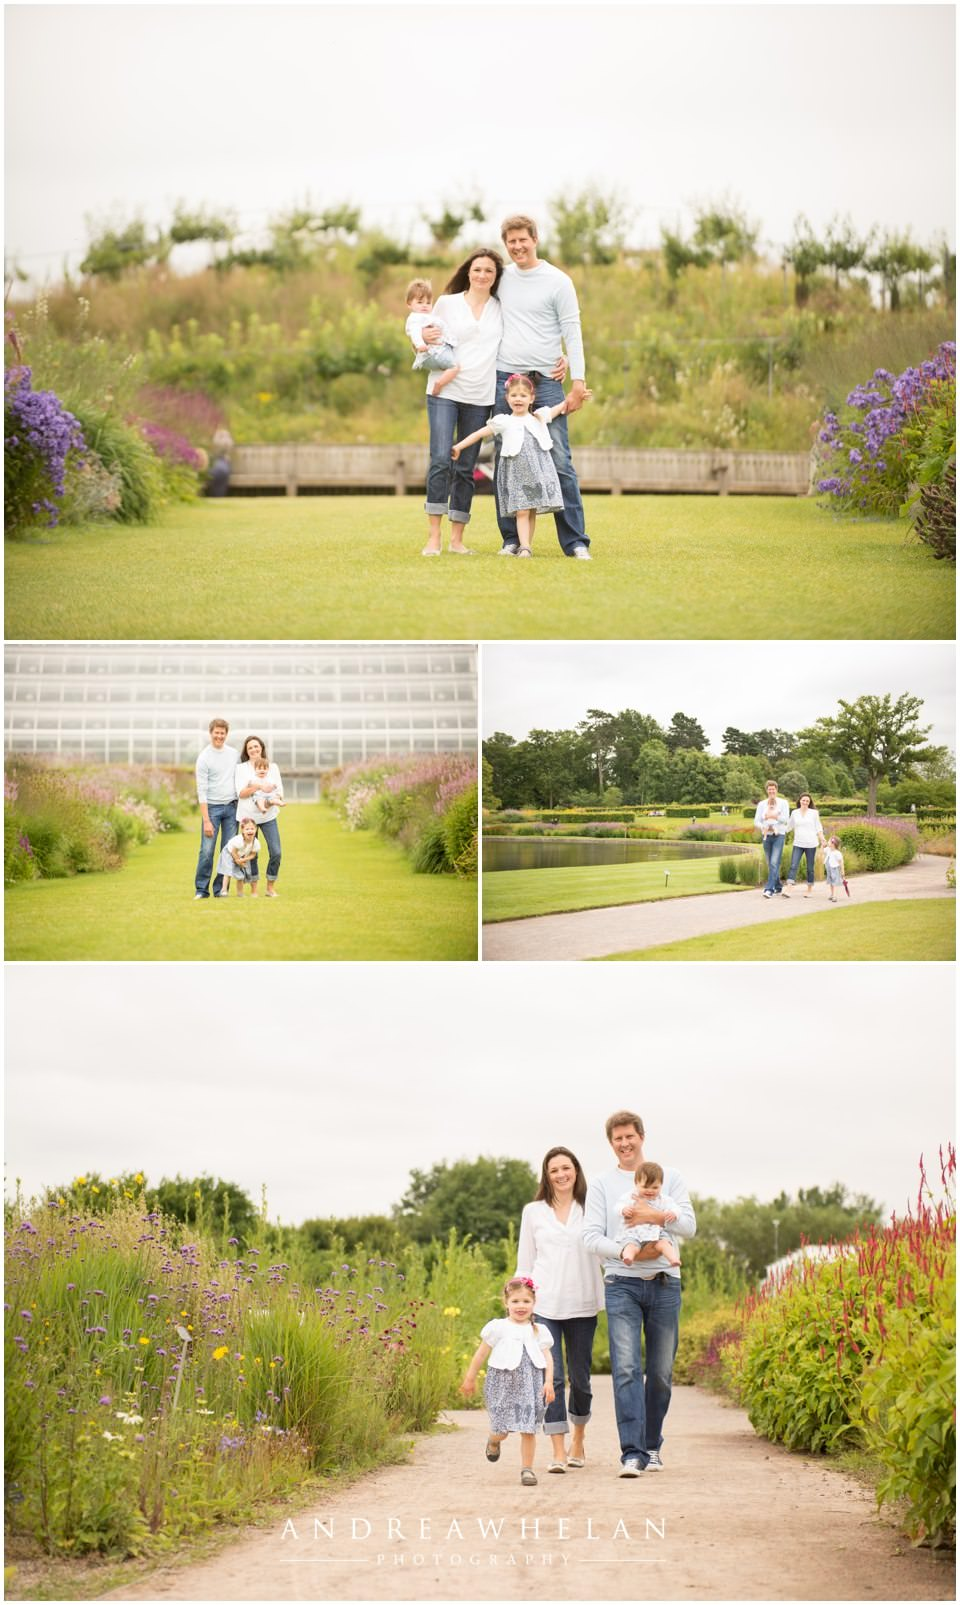 family photo shoot wisely garden surrey photographer